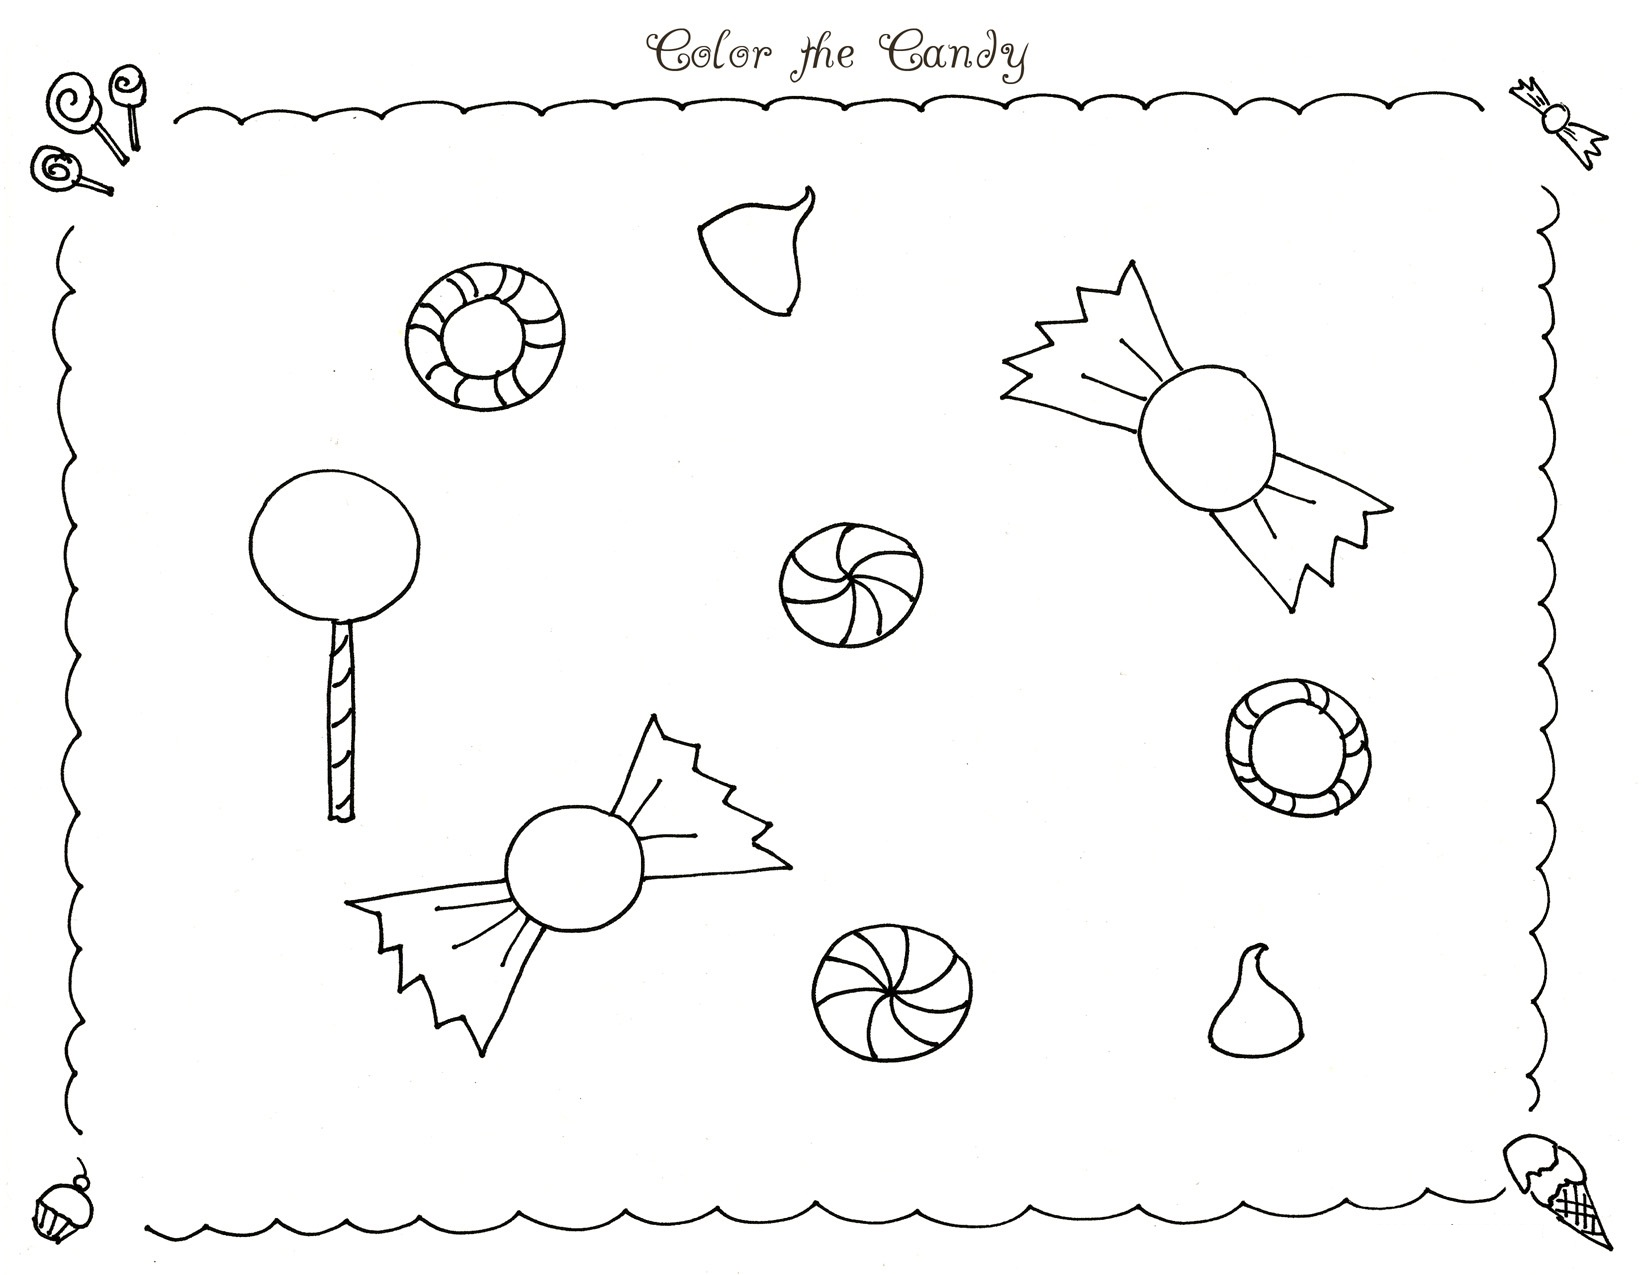 coloring pages fo candy - photo#27